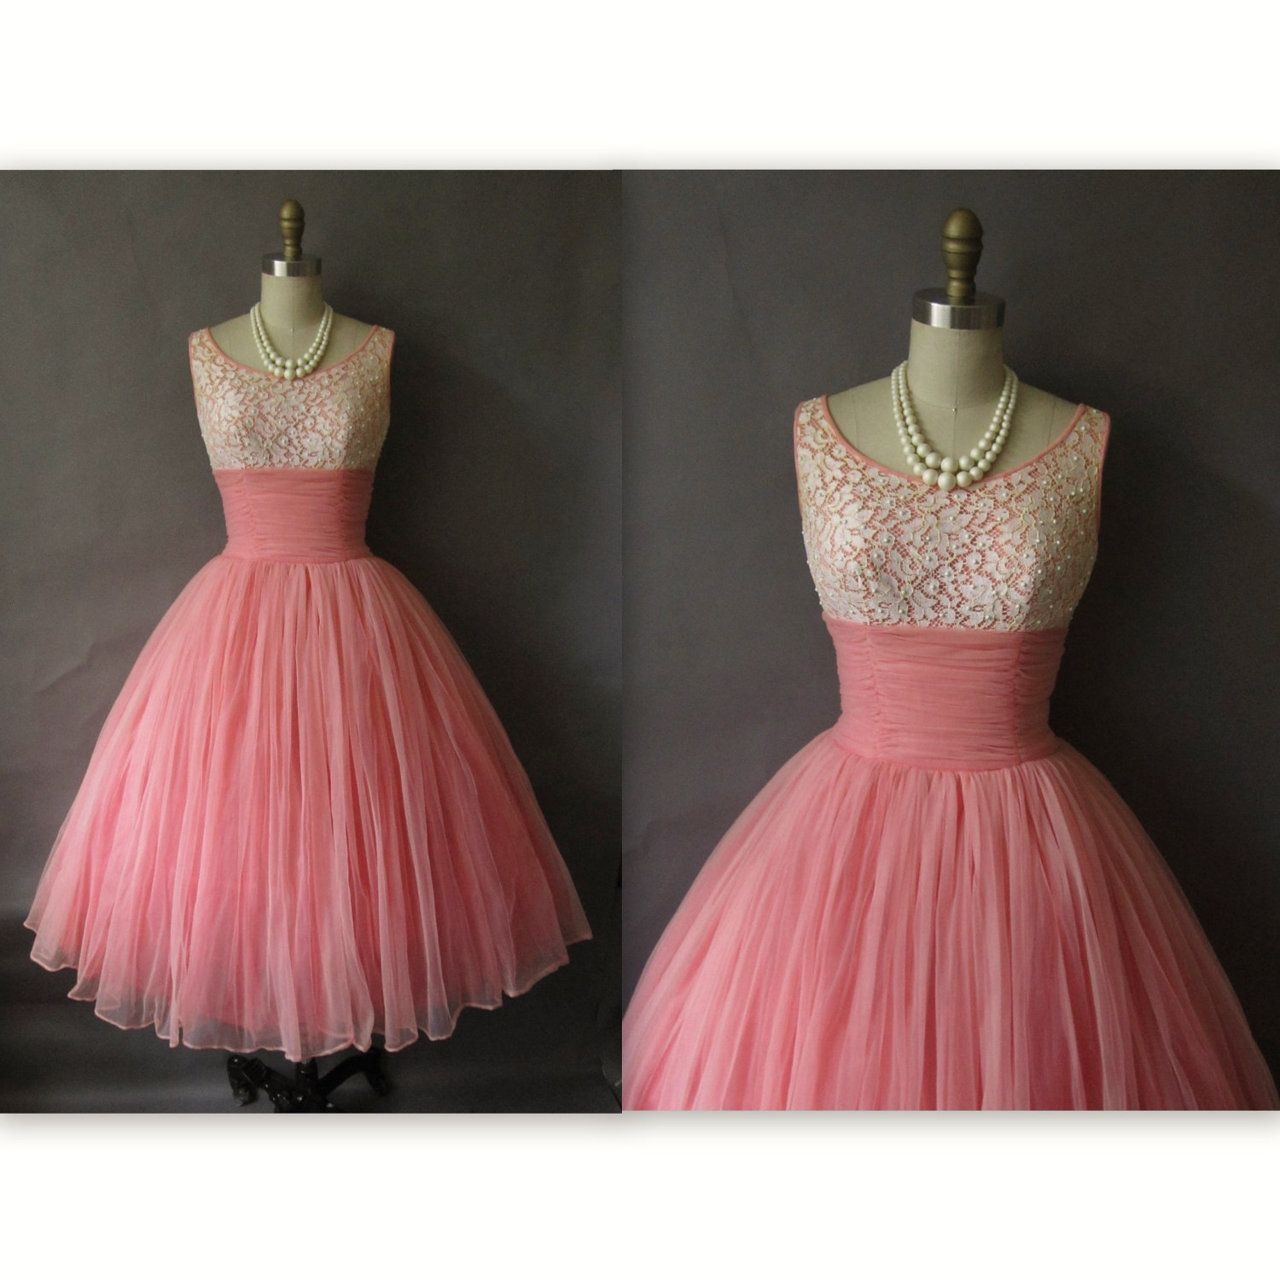 Mama mia look at this beauty vintage s prom dress from